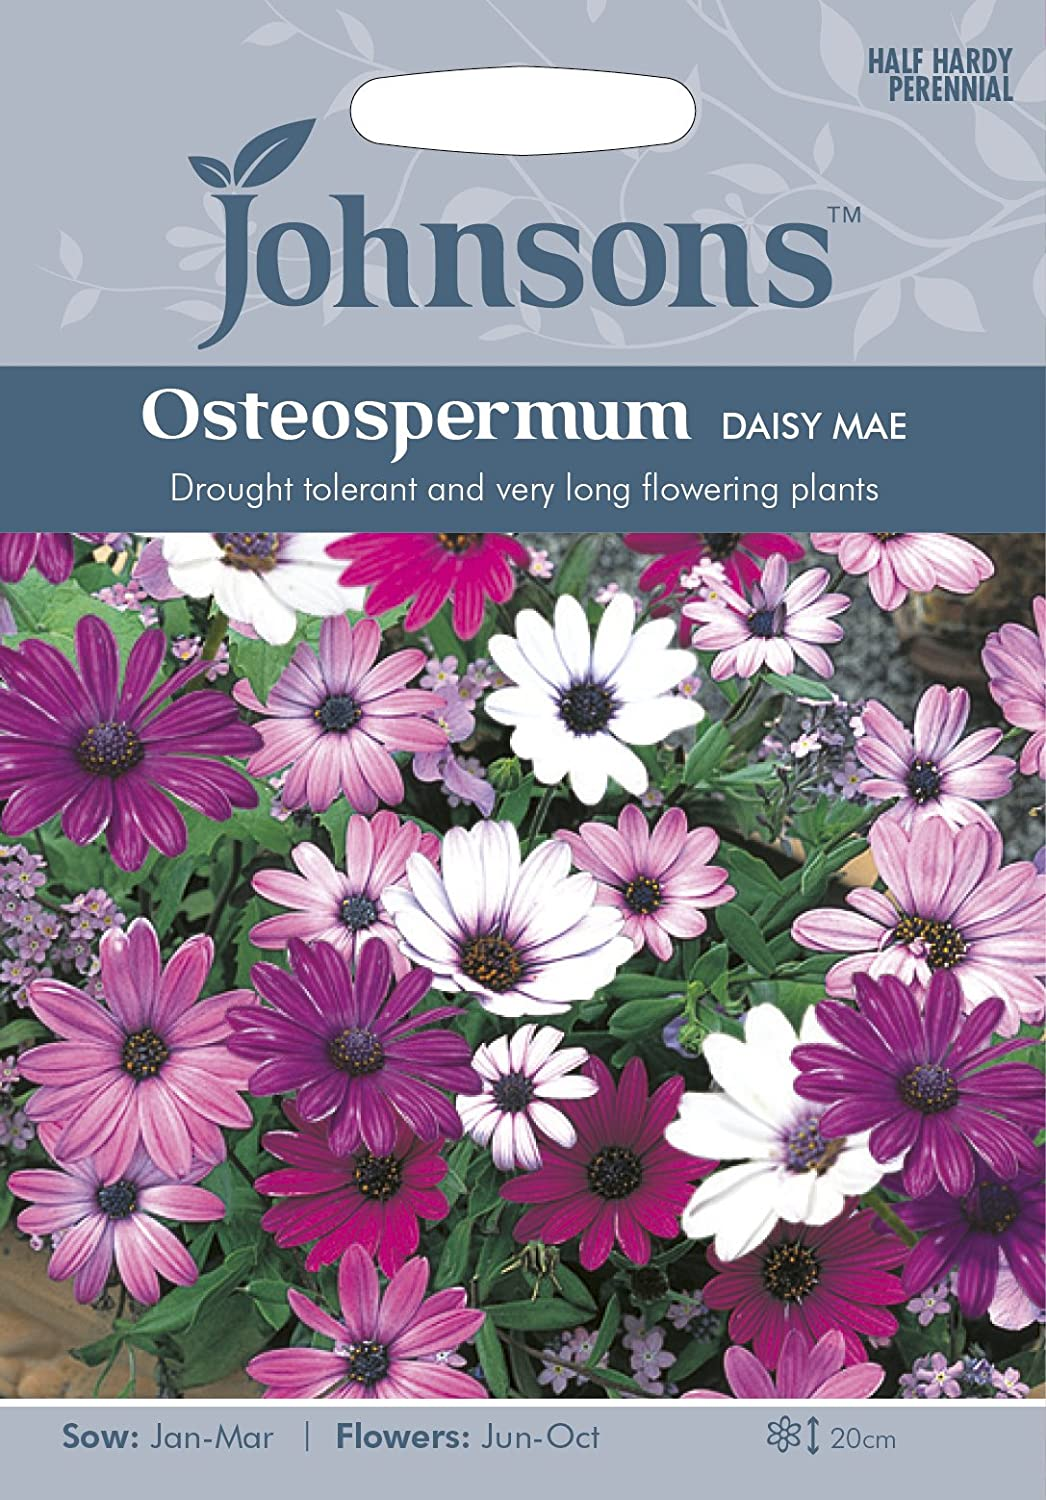 Johnsons Ukjofl Osteospermum Daisy Mae Amazon Garden